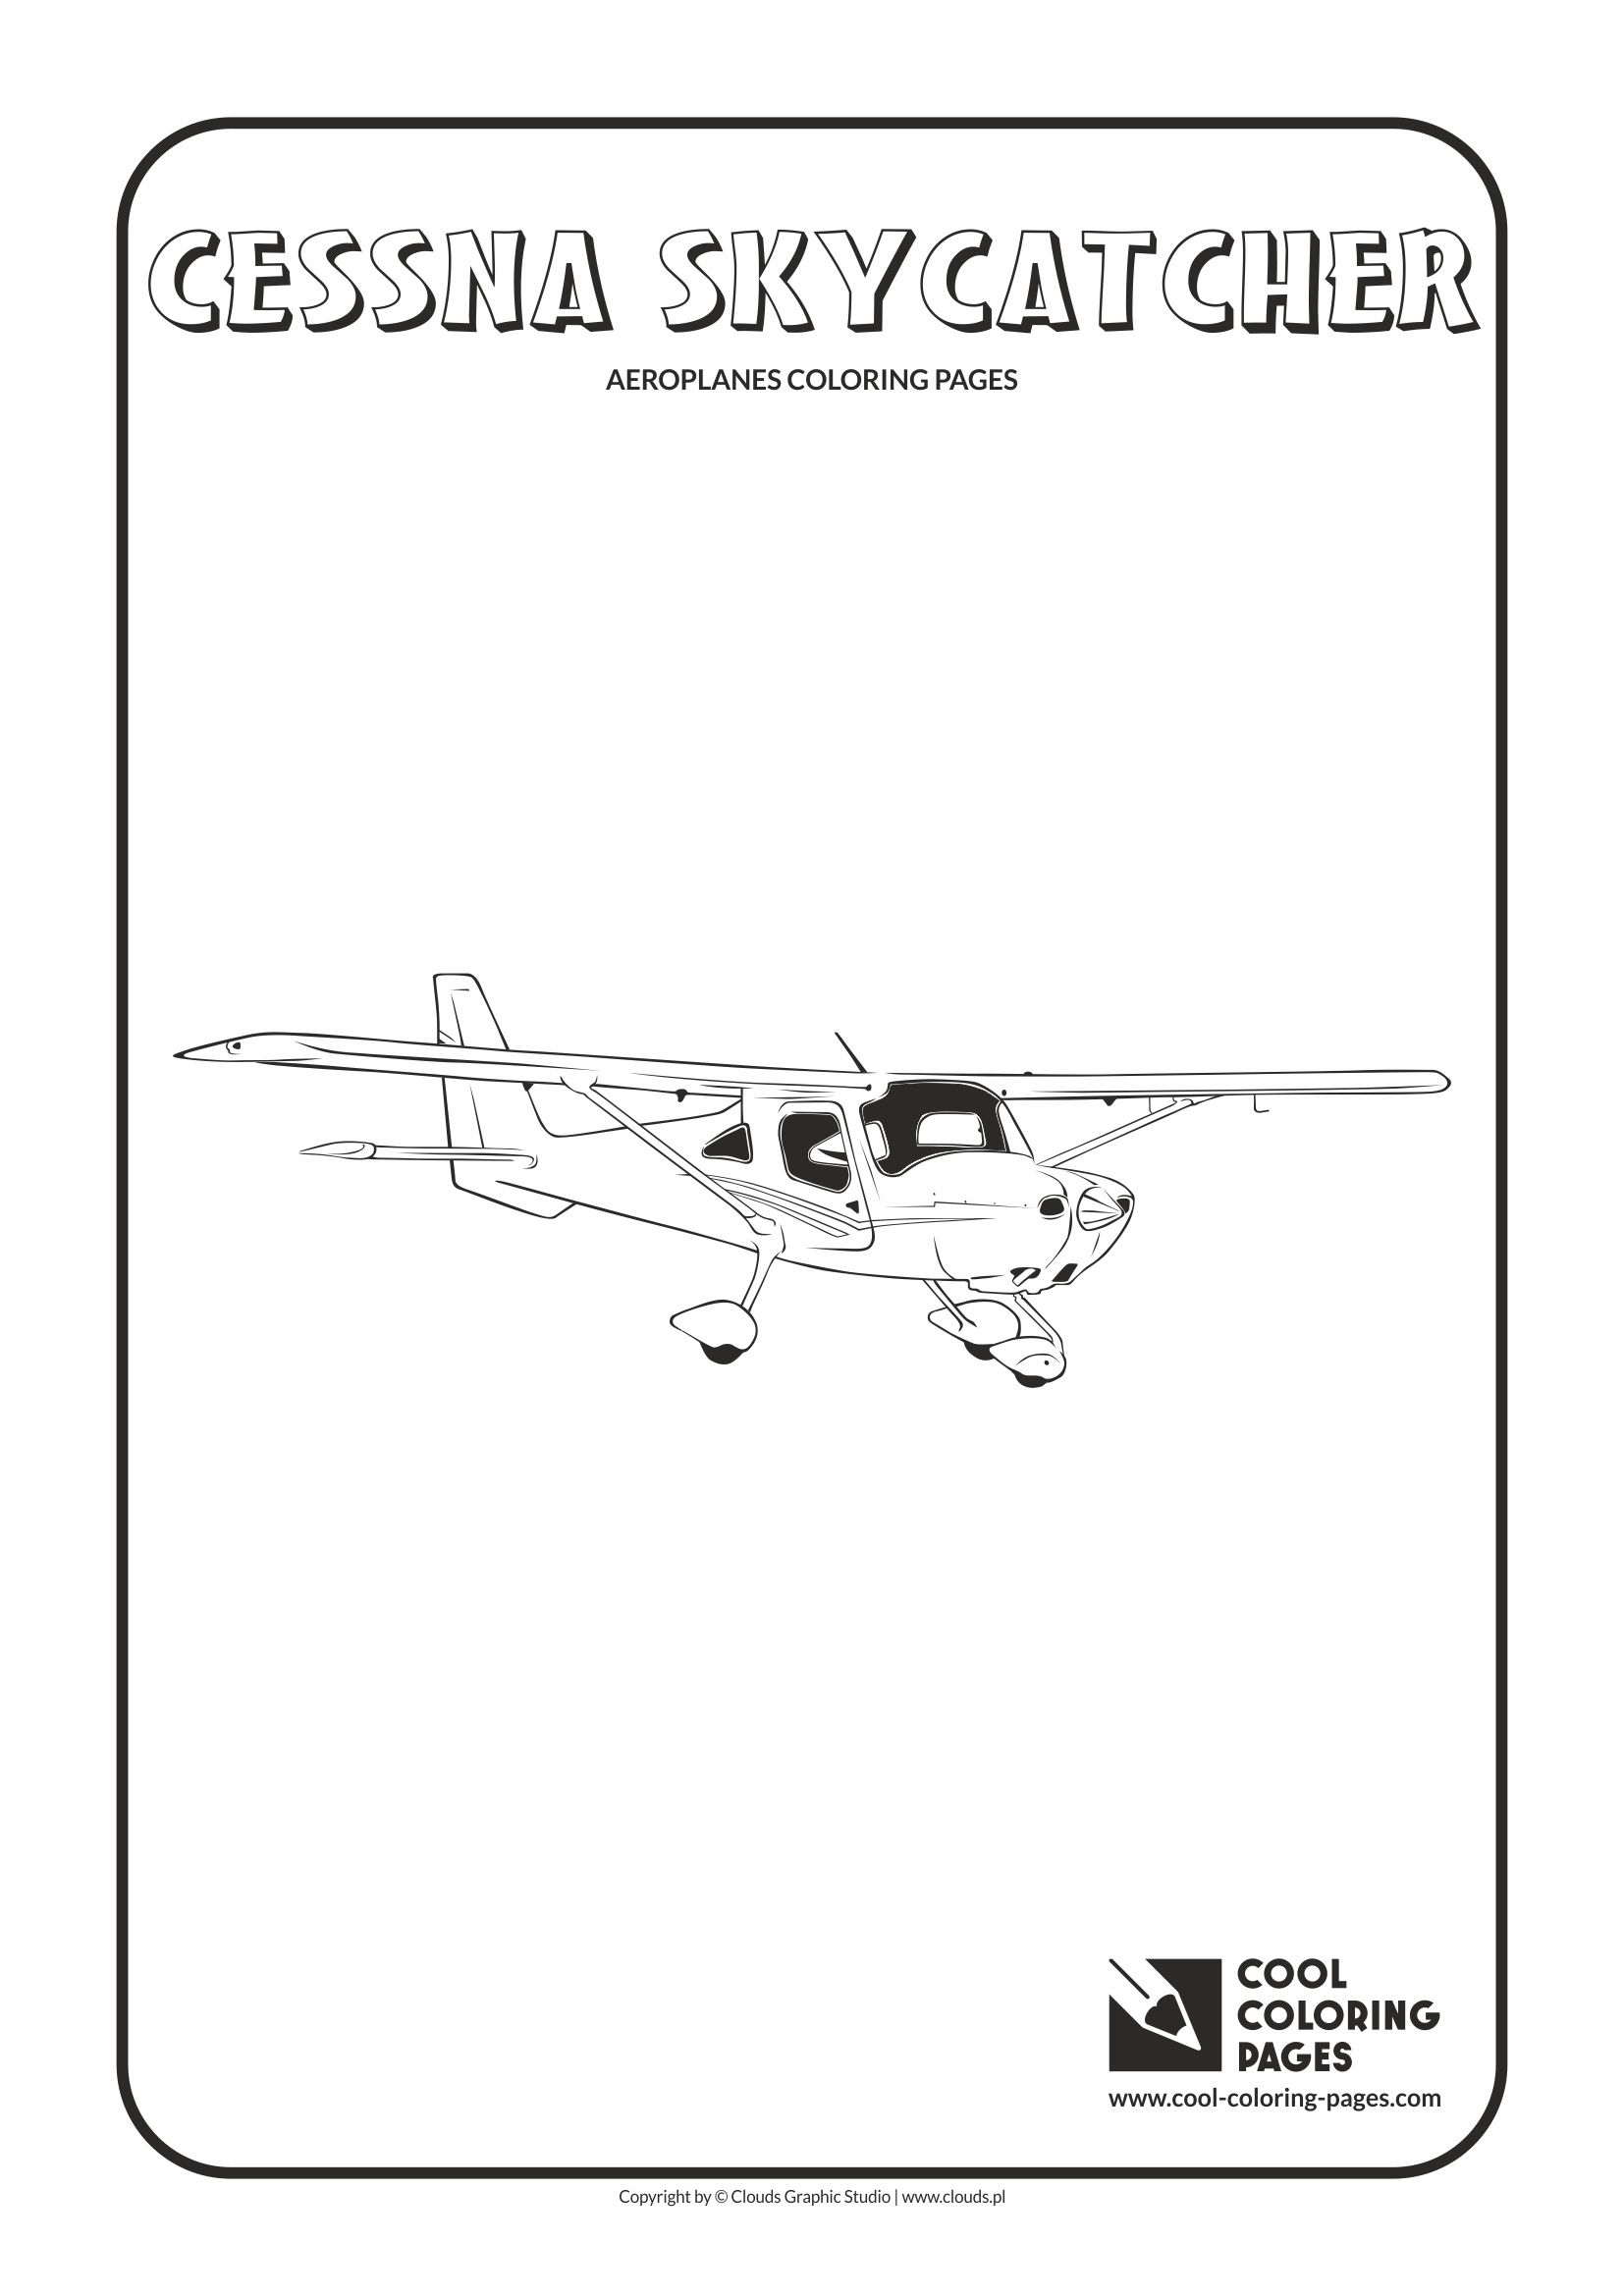 Cool Coloring Pages - Vehicles / Cessna Skycatcher / Coloring page with Cessna Skycatcher